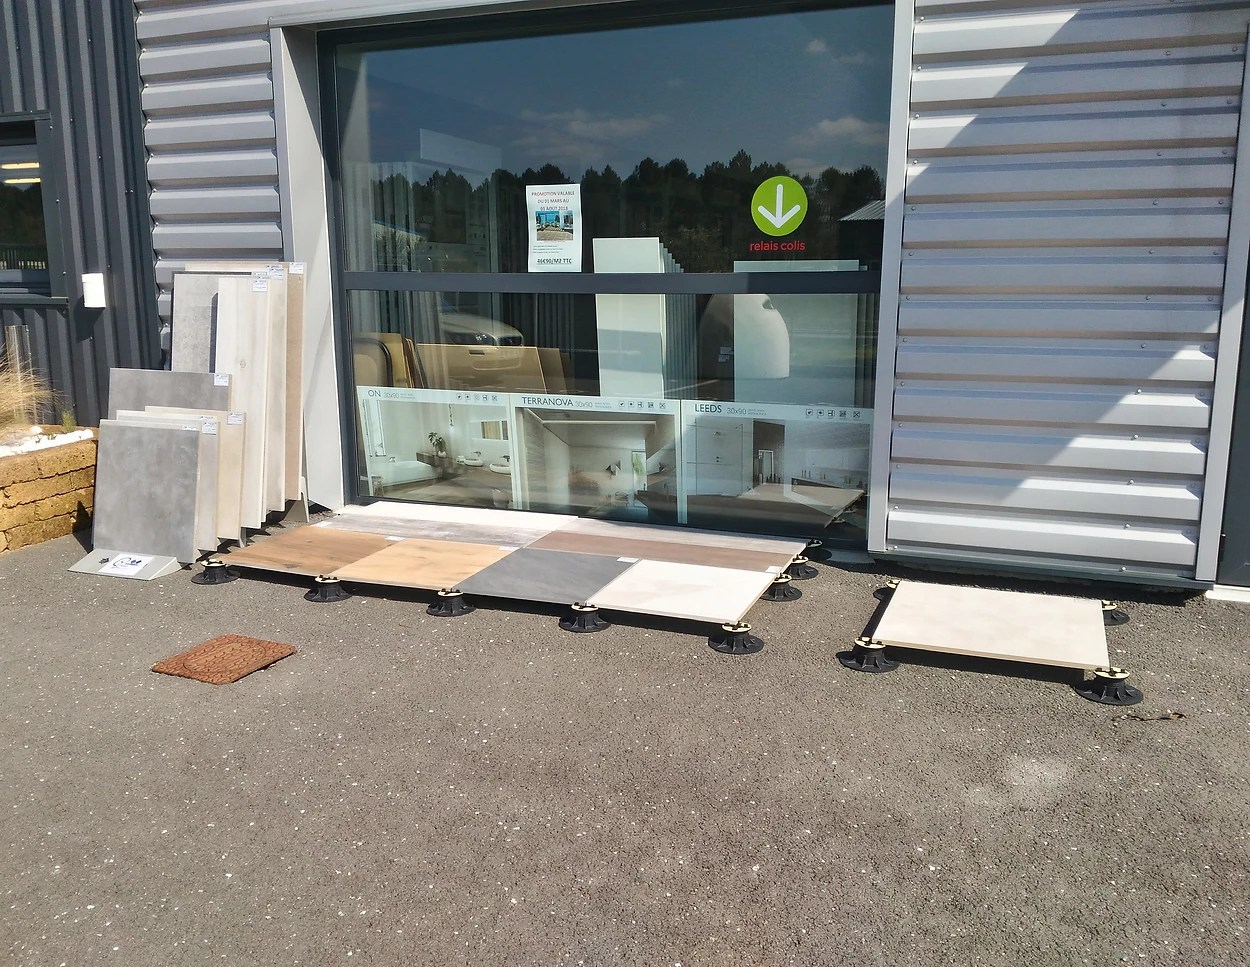 Carrelage Concept Design  France   Carrelage Pas Cher Bordeaux Carrelage Concept Design Magasin ext    rieur 2